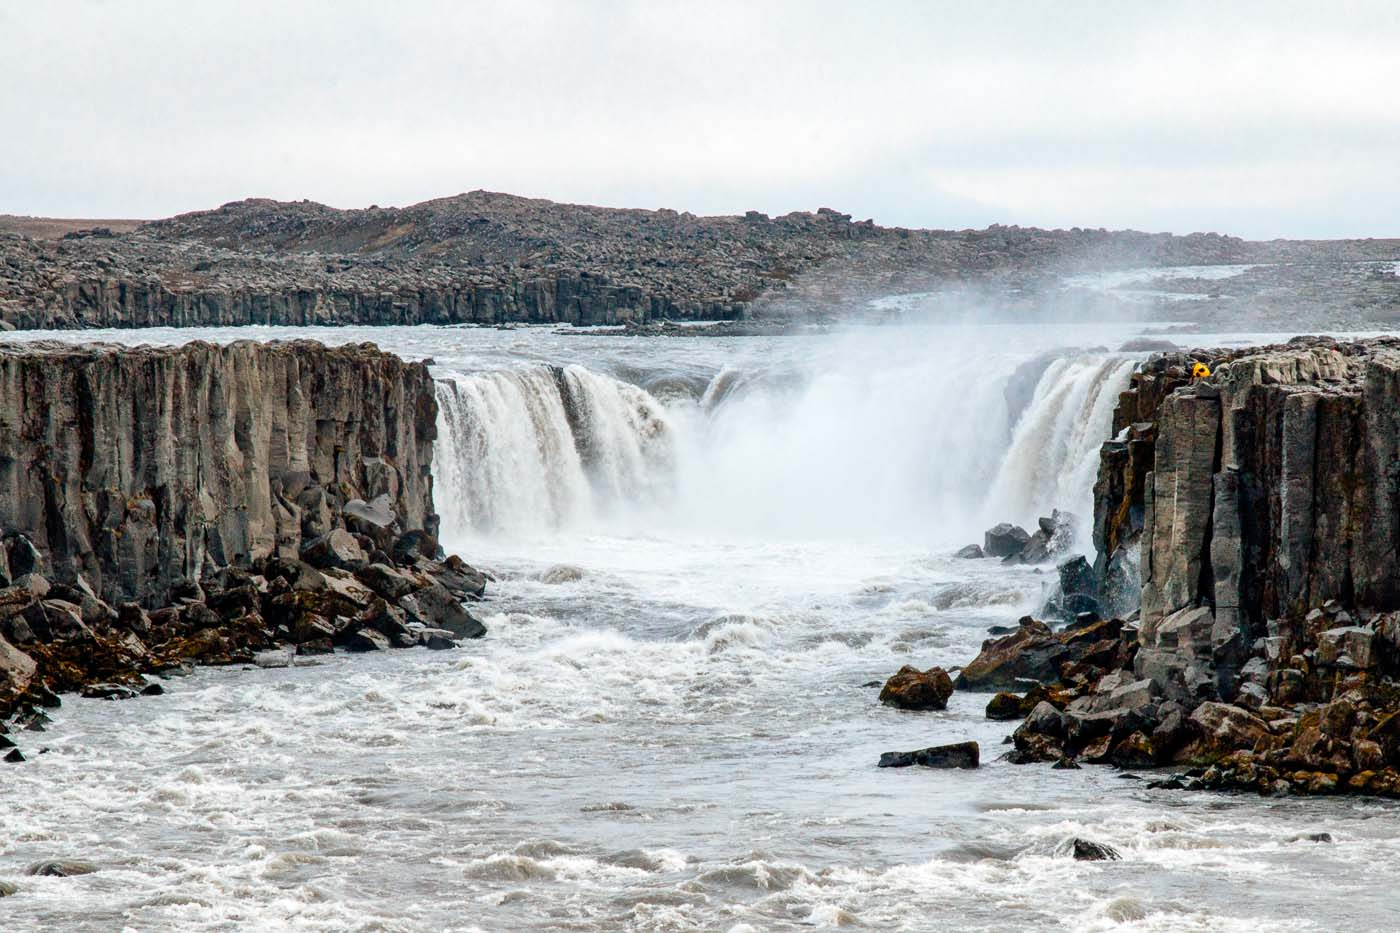 The Selfoss waterfall